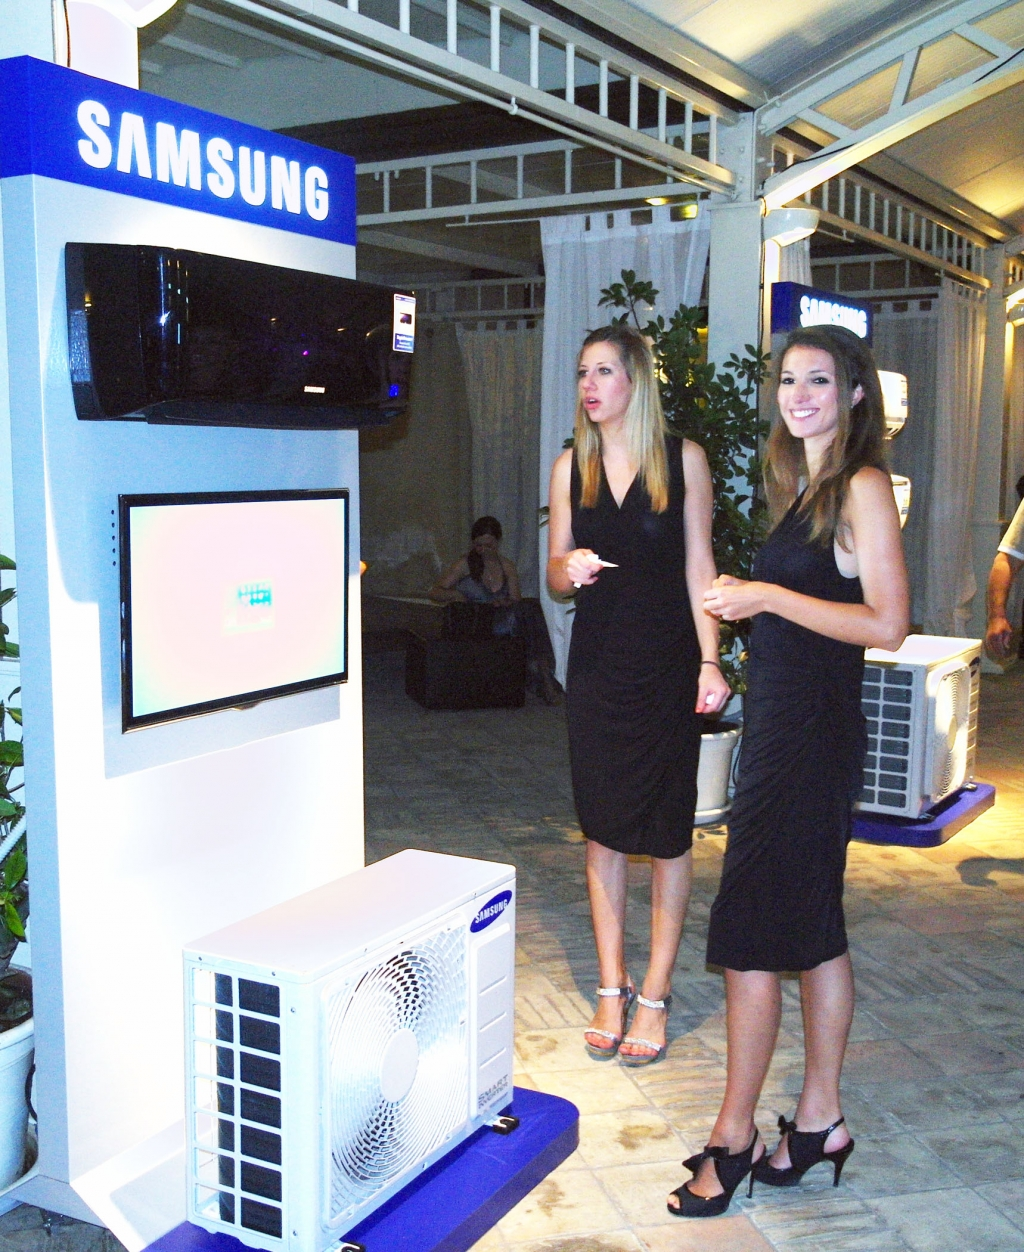 Samsung A/C Honored with Company to Watch Award in Italy